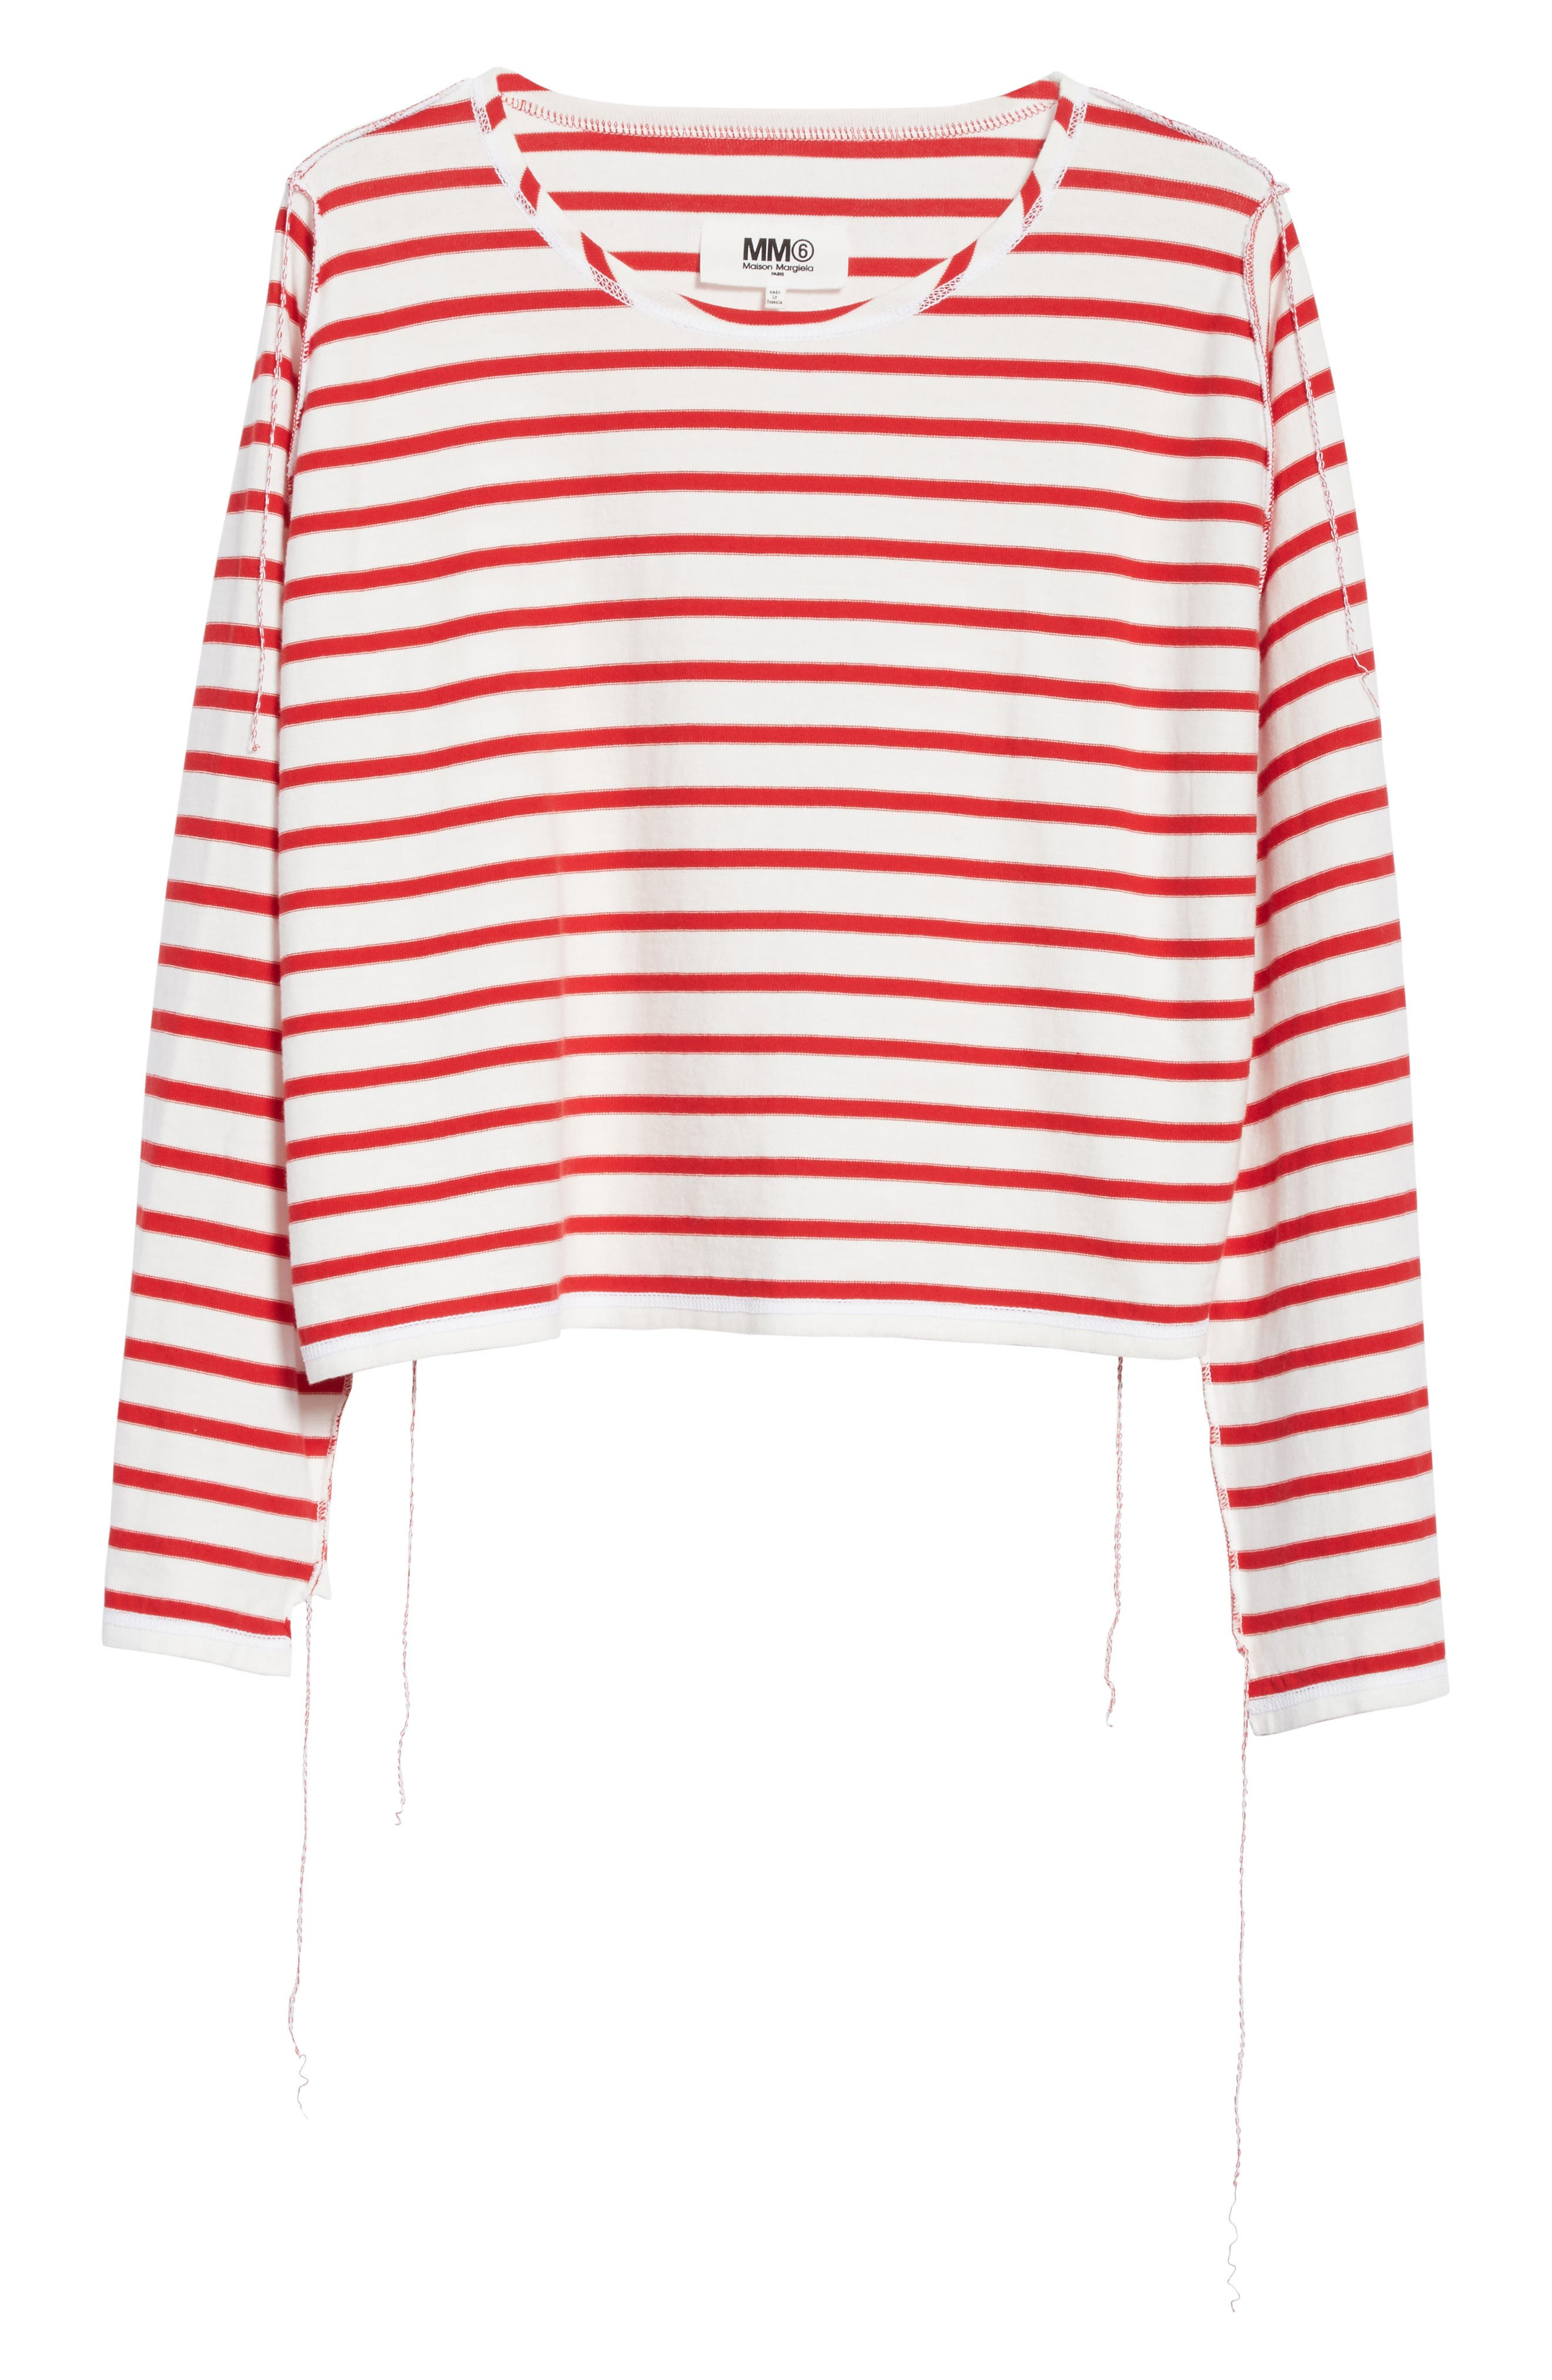 Inside Out Stripe Sweater,                             Alternate thumbnail 6, color,                             600